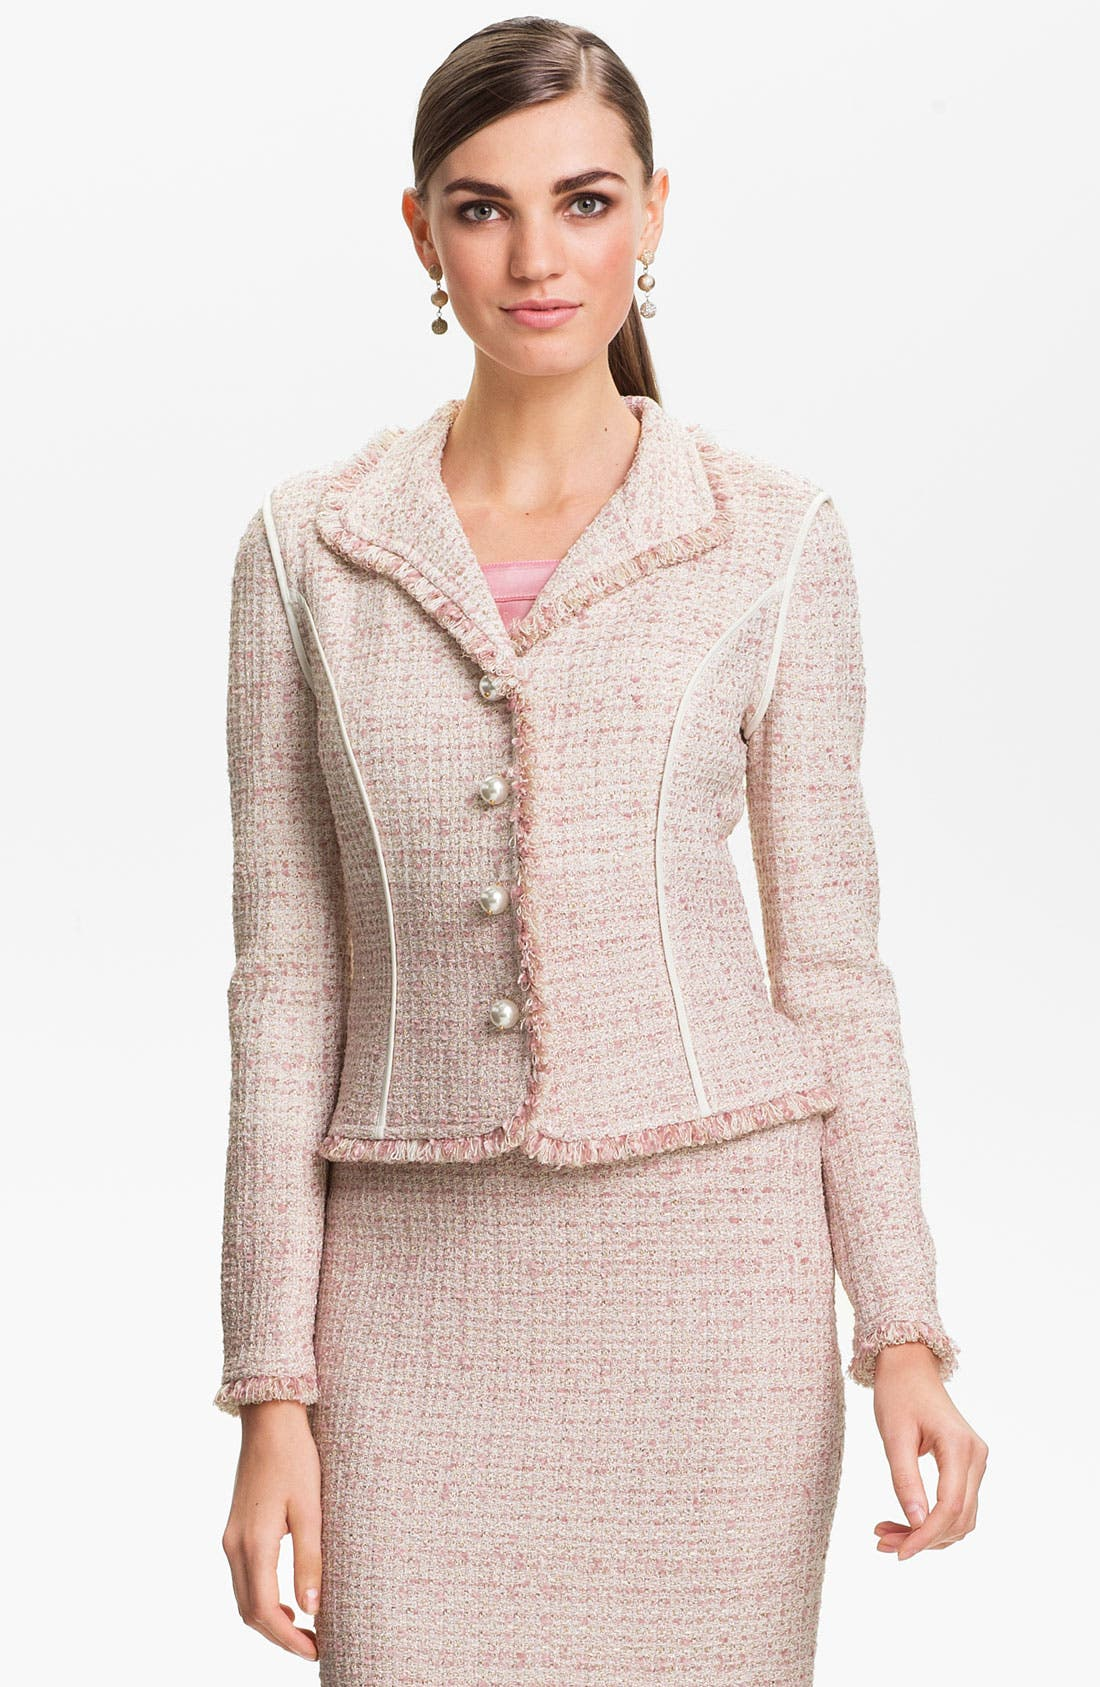 Alternate Image 1 Selected - St. John Collection Eyelash Shimmer Tweed Jacket